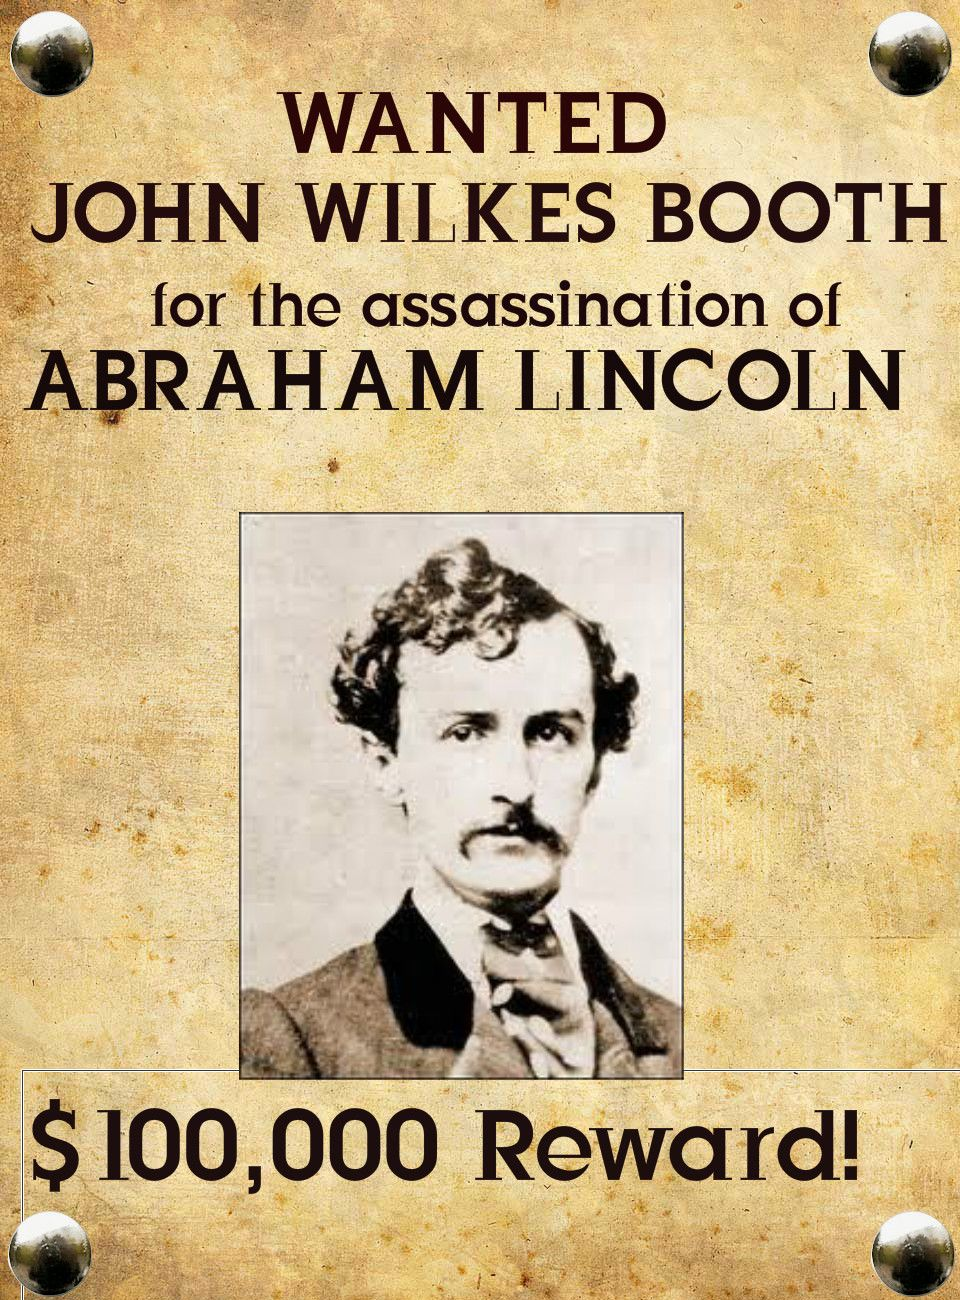 John Wilkes Booth Enid Oklahoma John Wilkes Booth Wanted Poster